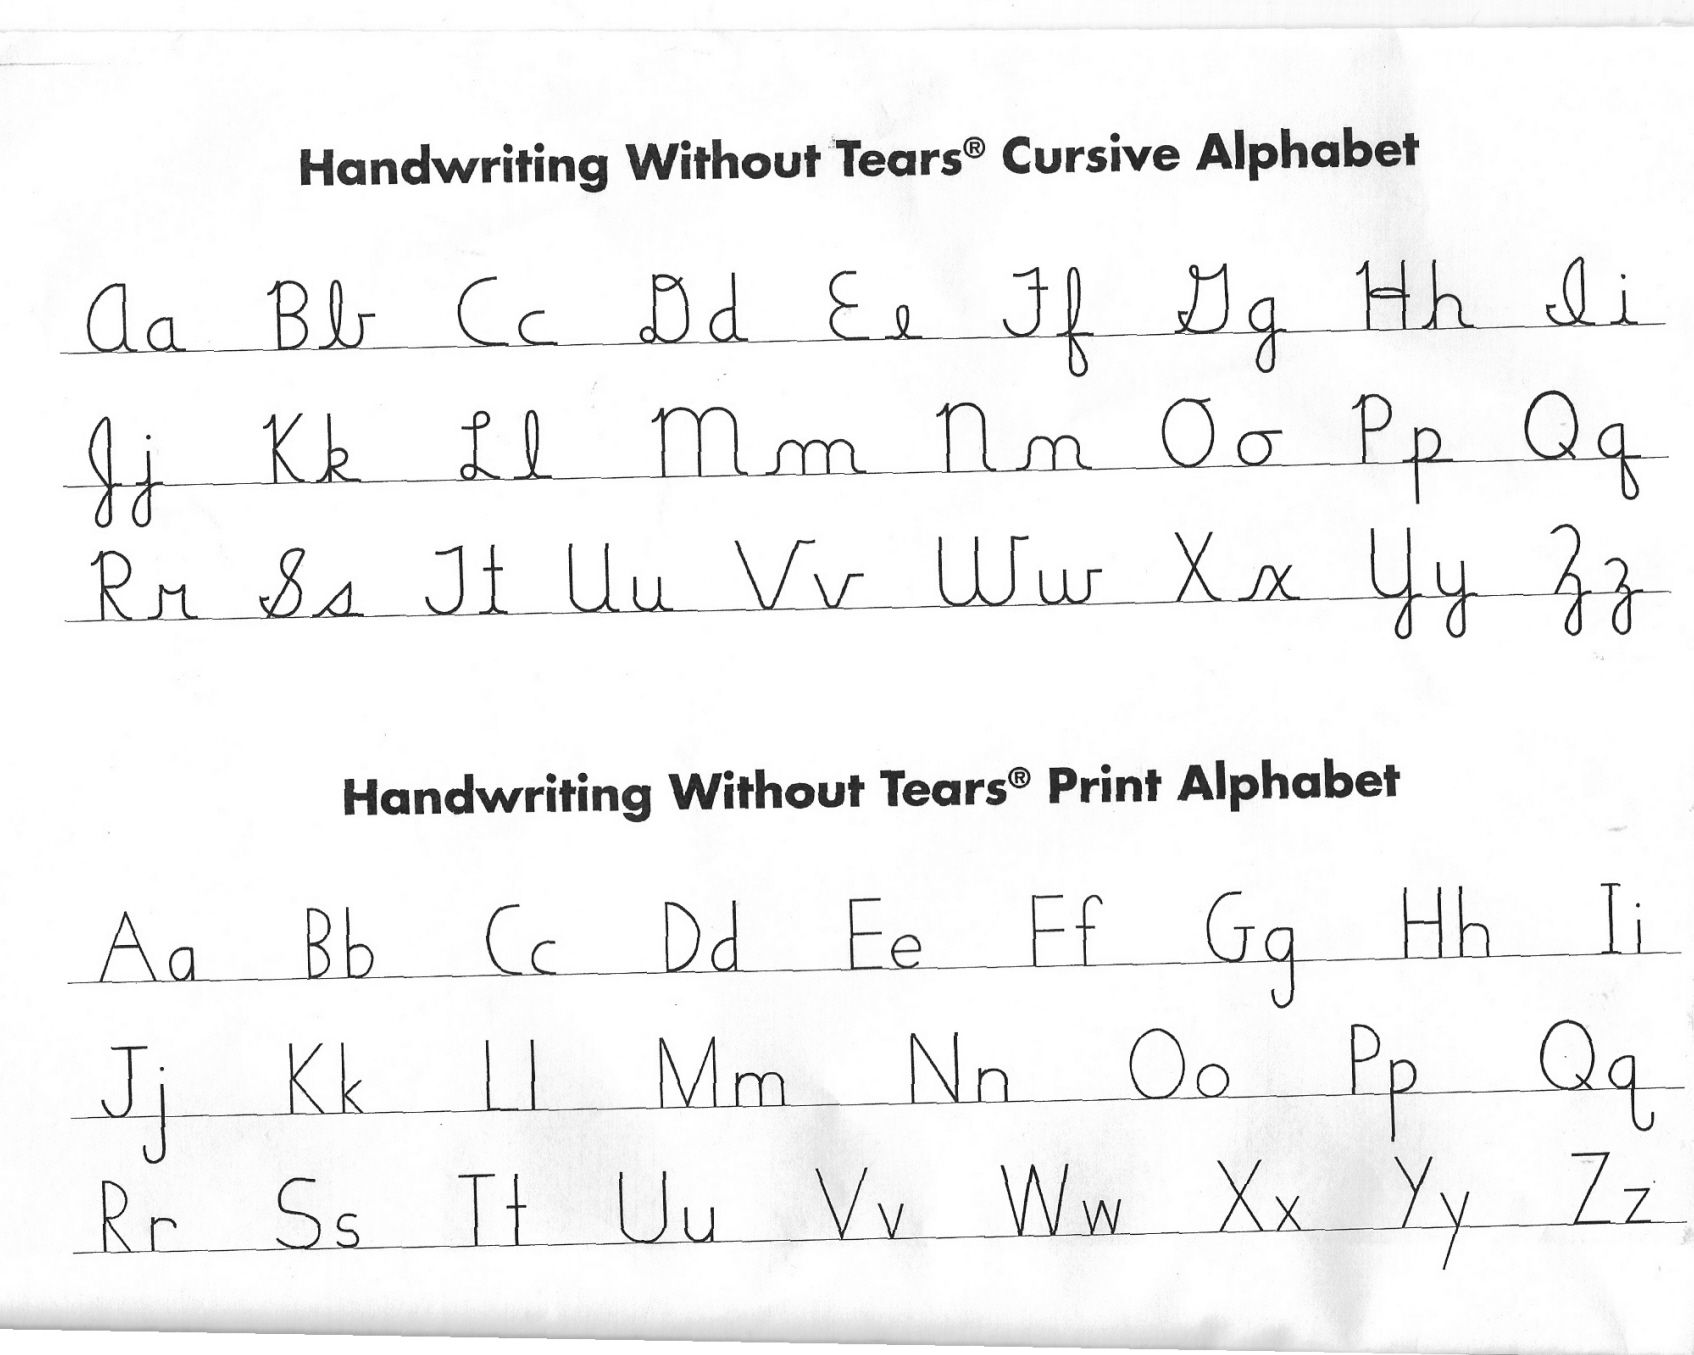 Collection of Writing Without Tears Worksheets - Sharebrowse